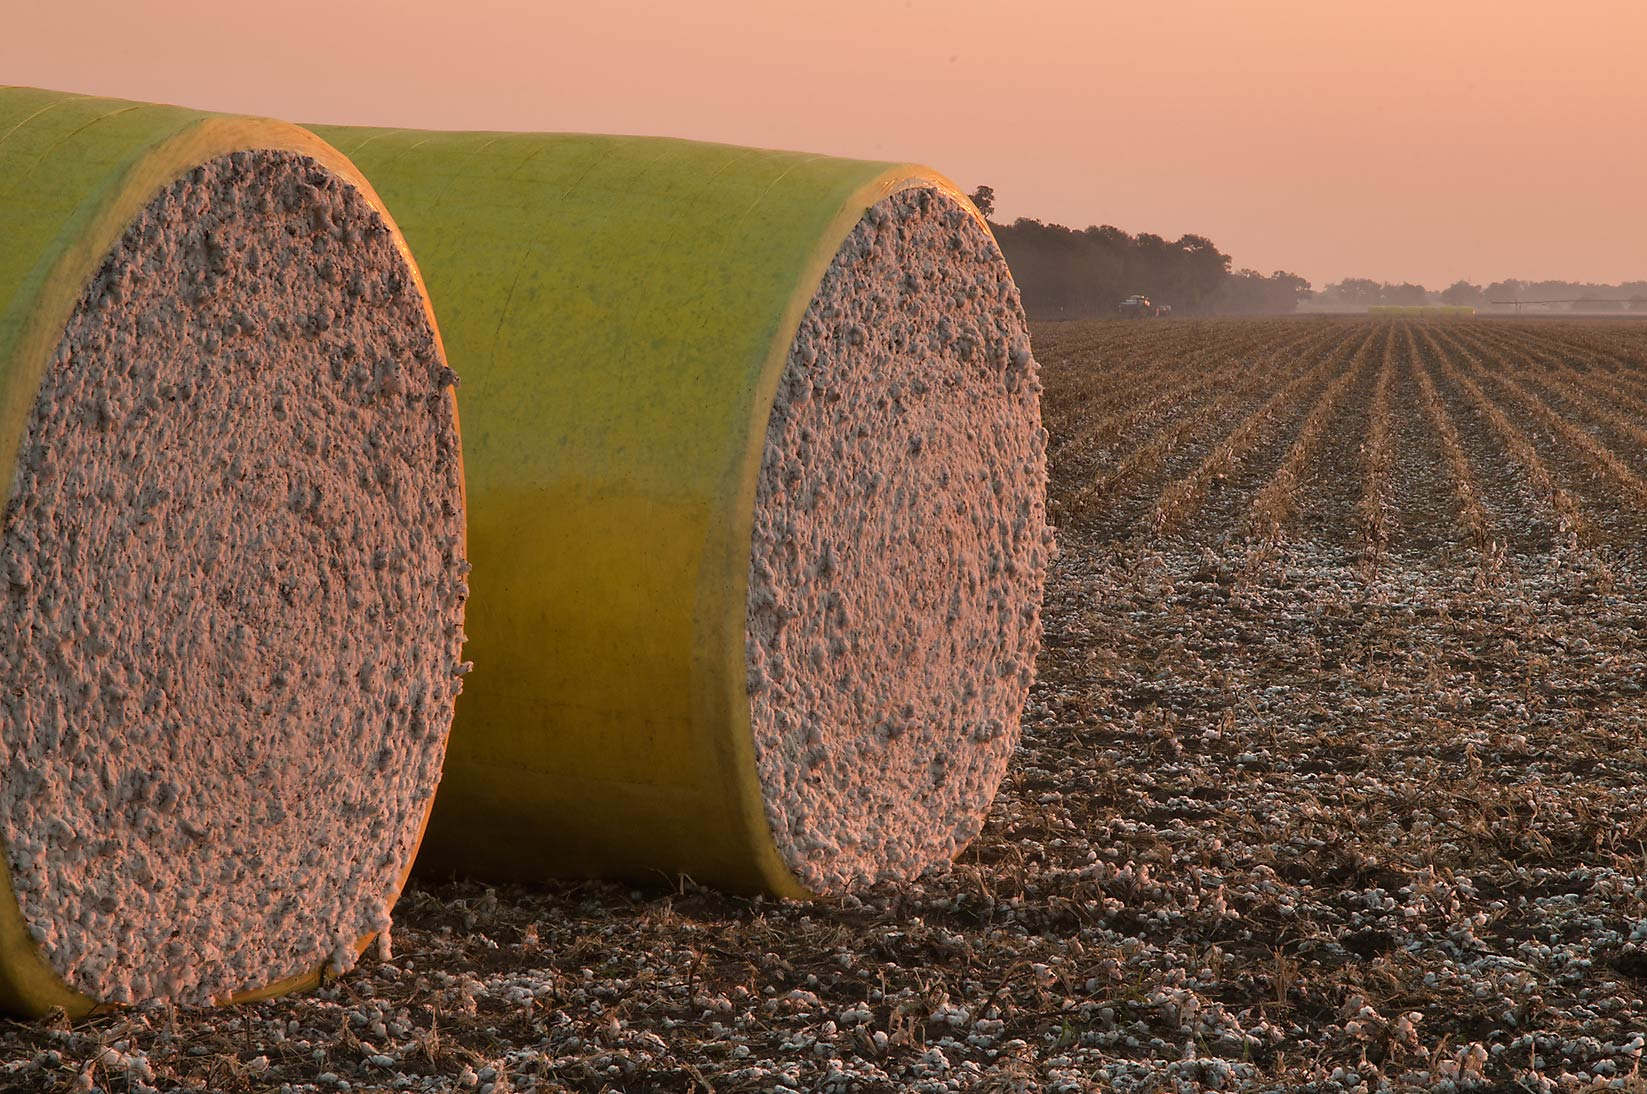 Bails of cotton near CR 264 at sunrise. Gause, Texas